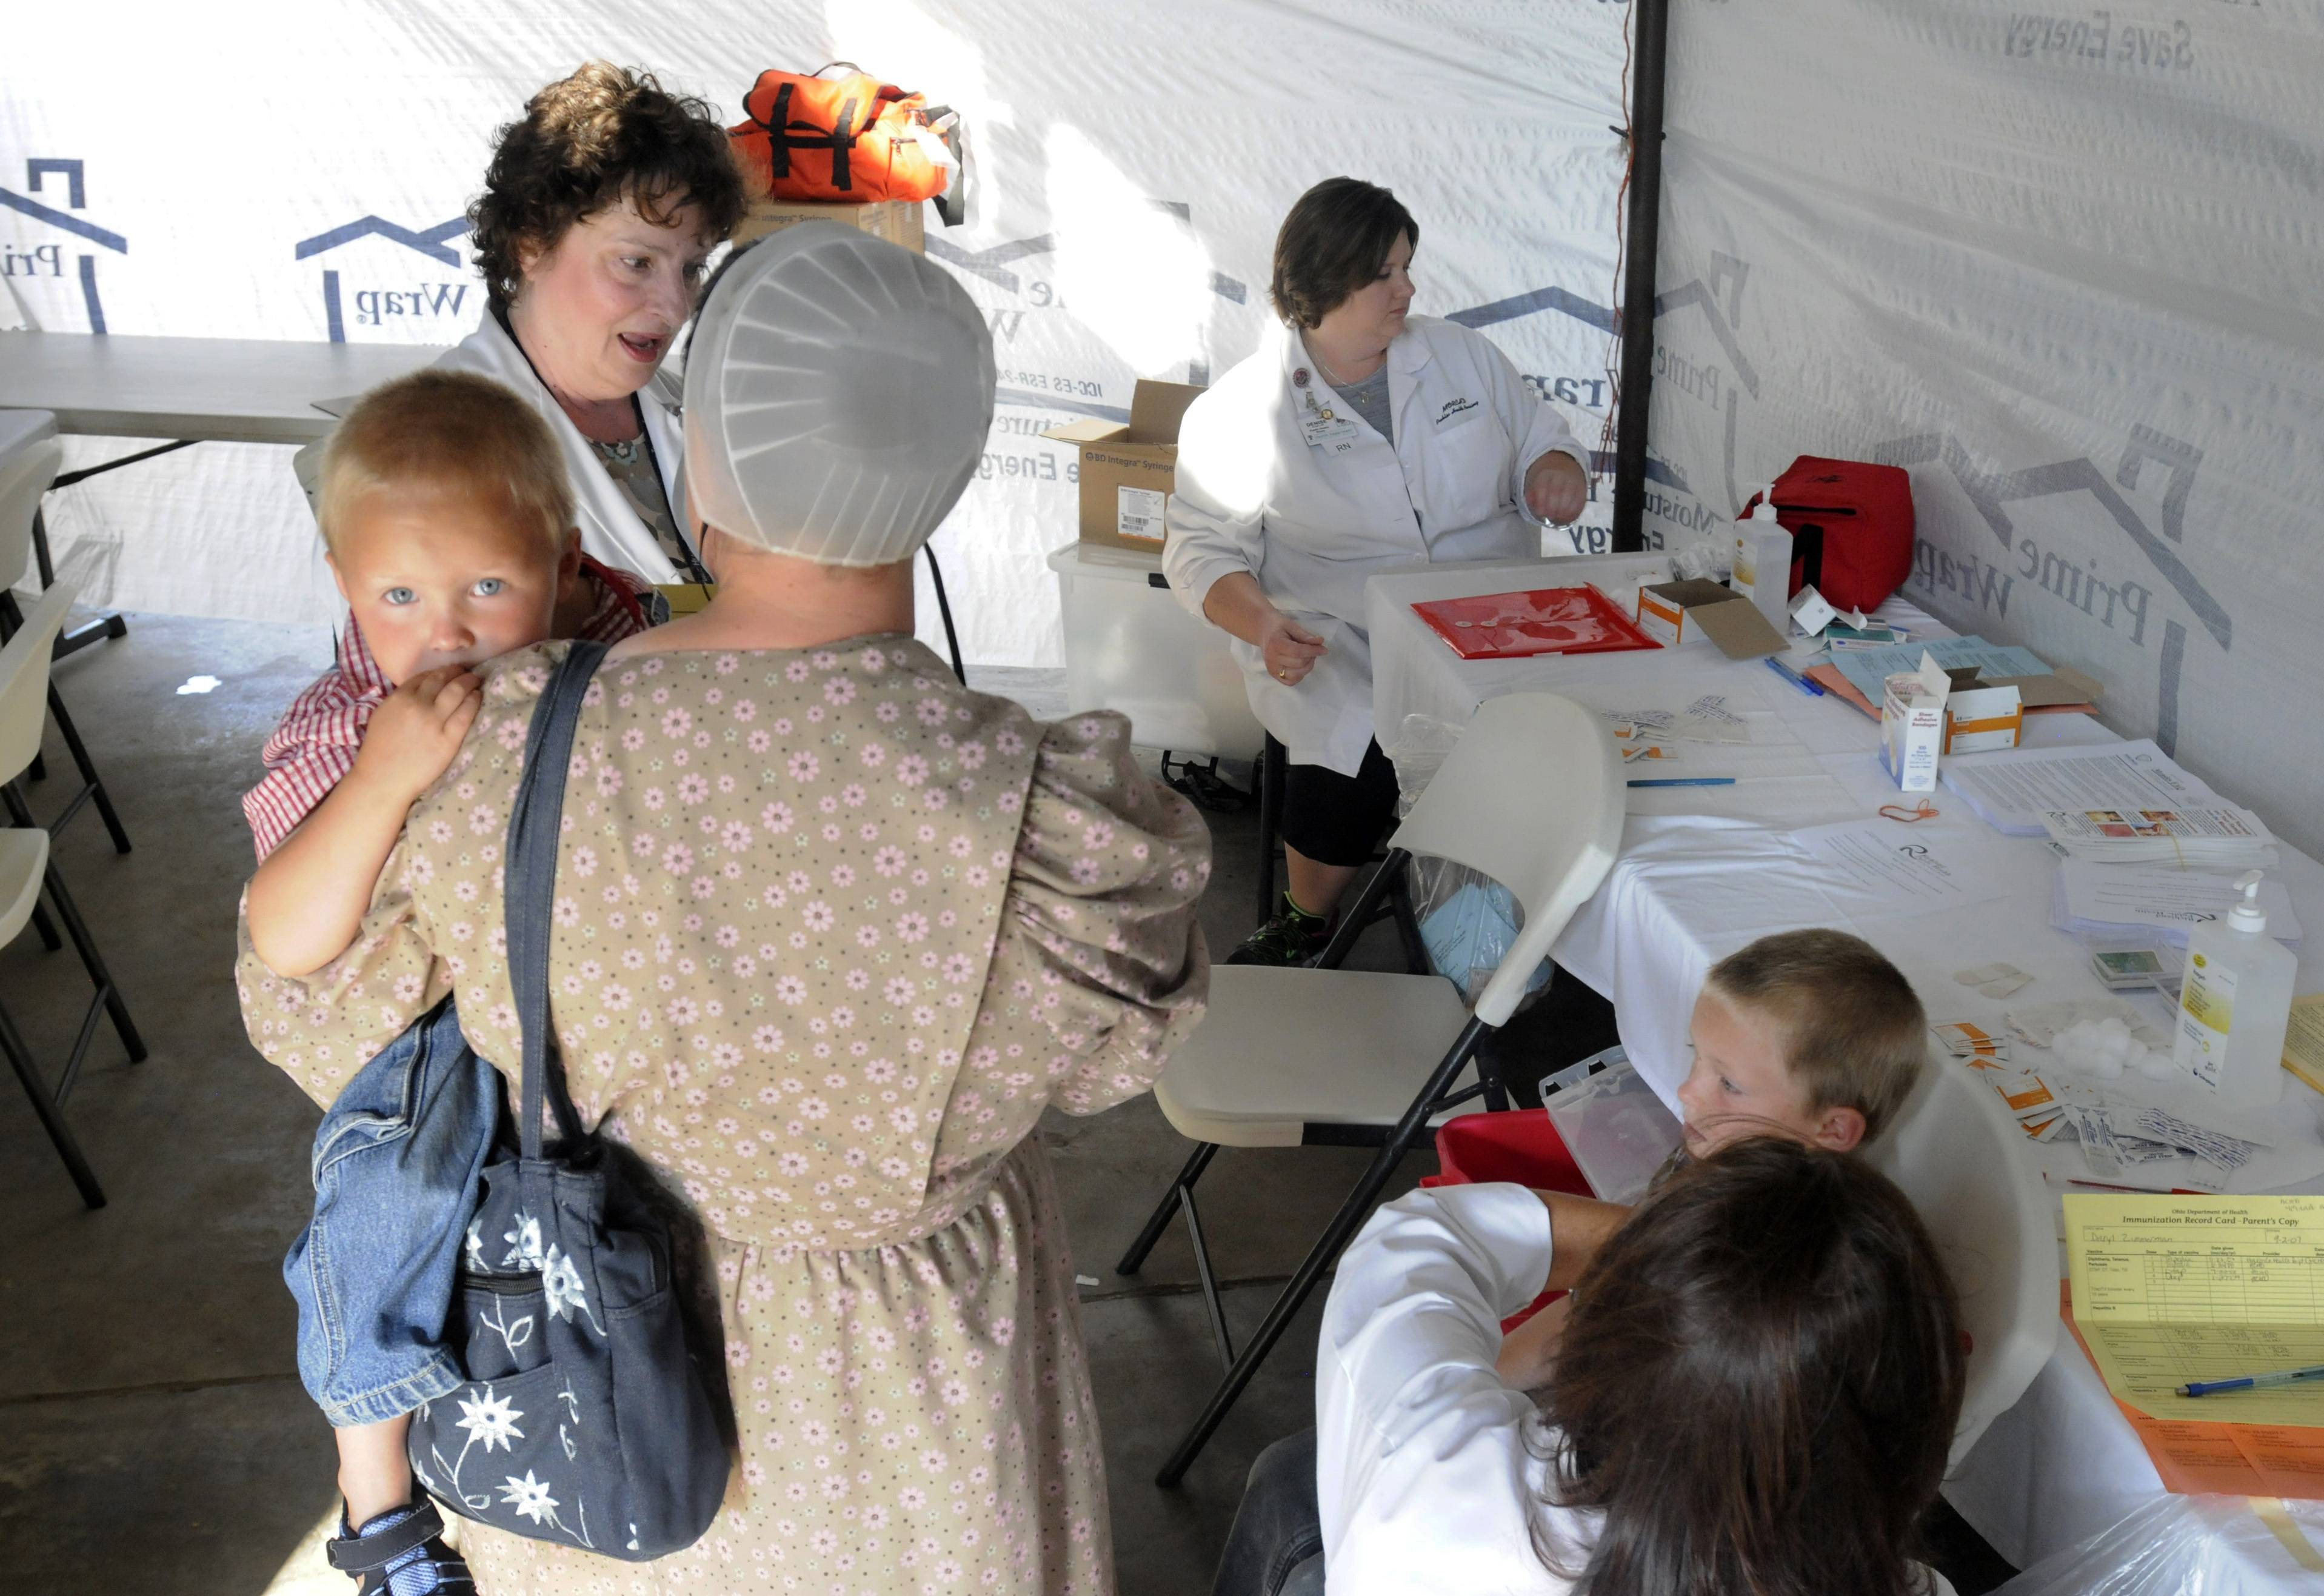 Richland Public Health nurse Sue McFarren talks with a Mennonite mother and child at a Measles, Mumps, & Rubella (MMR) clinic for the Mennonite community in Richland County in Shiloh, Ohio.